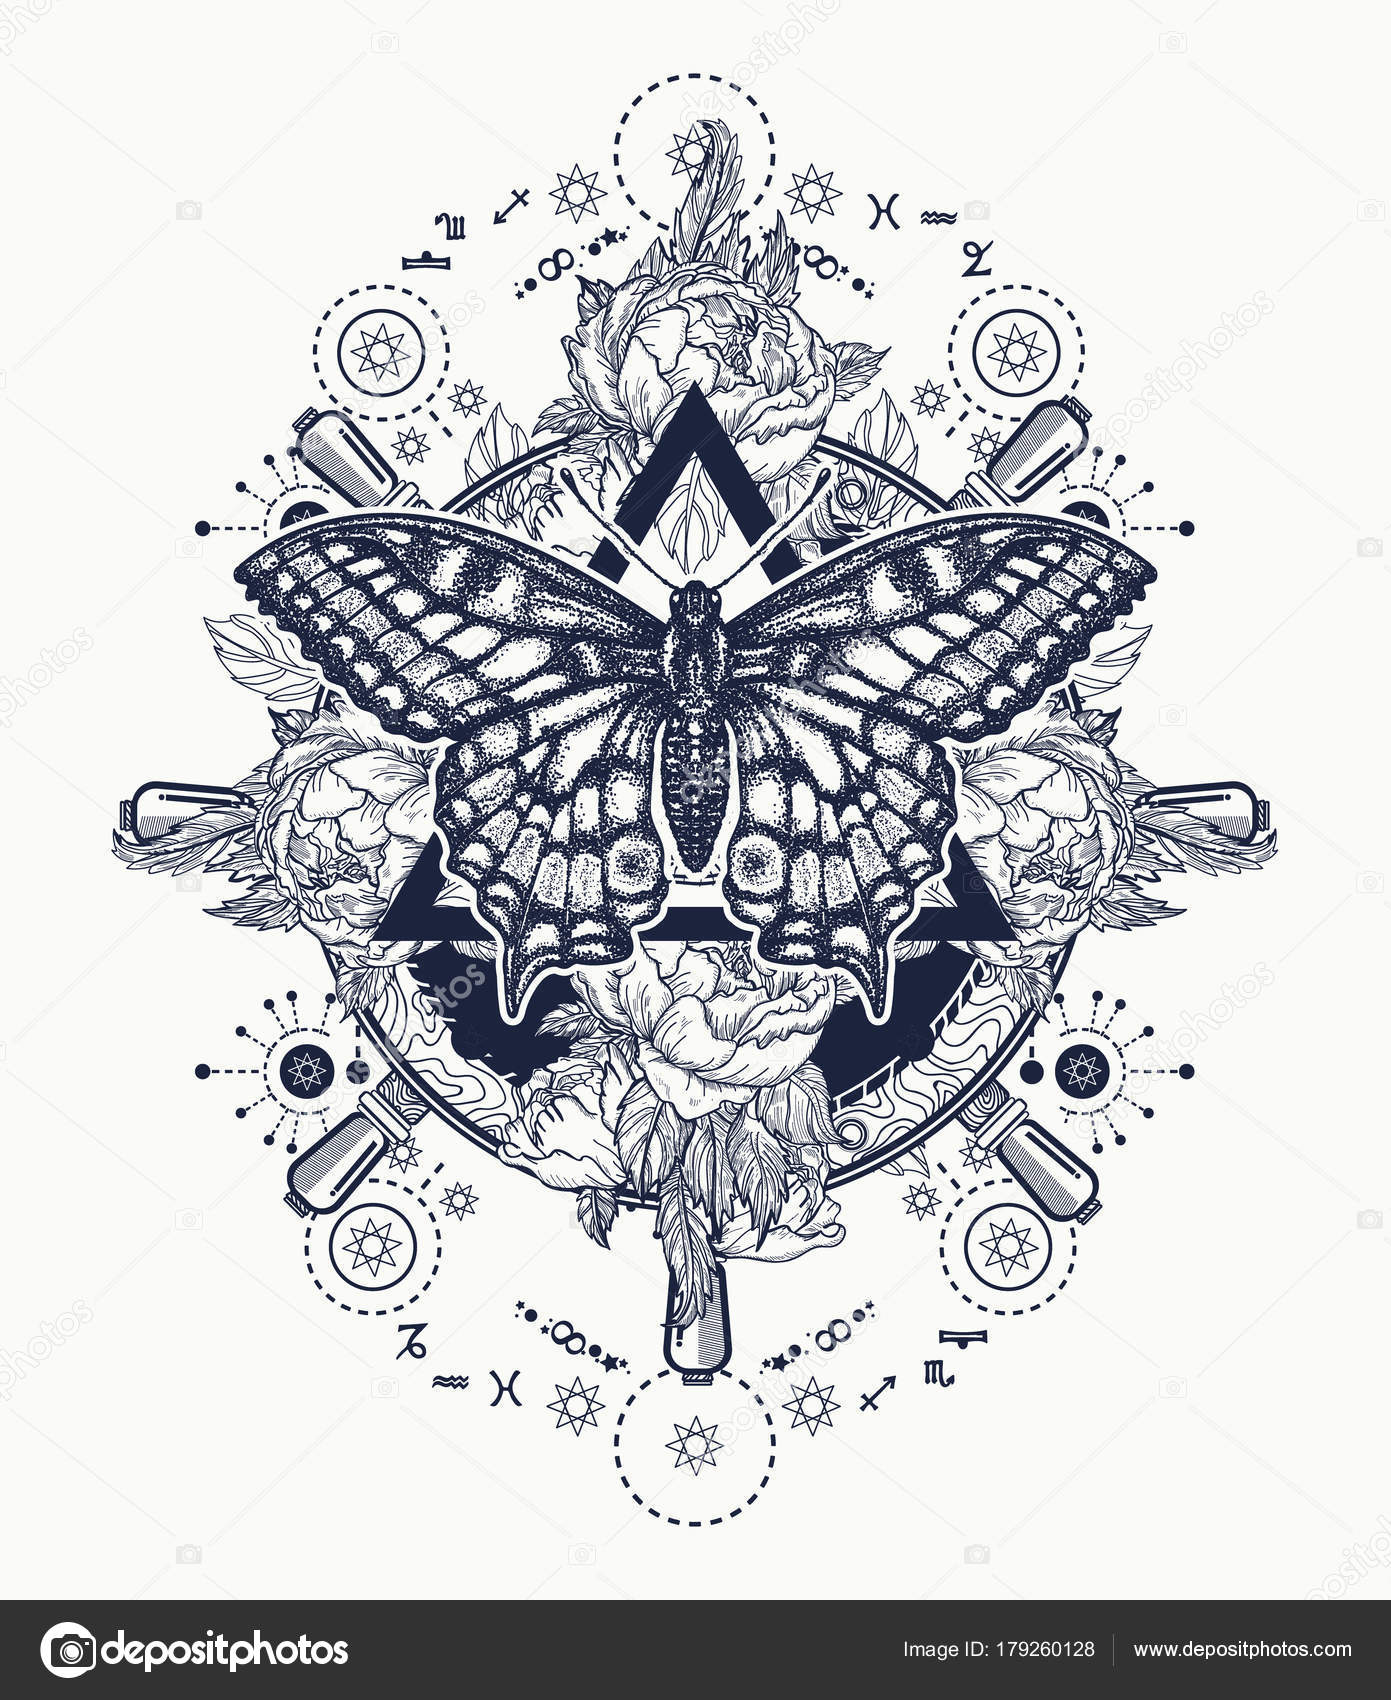 Magic Butterfly Tattoo Art Freemason Spiritual Symbols Alchemy